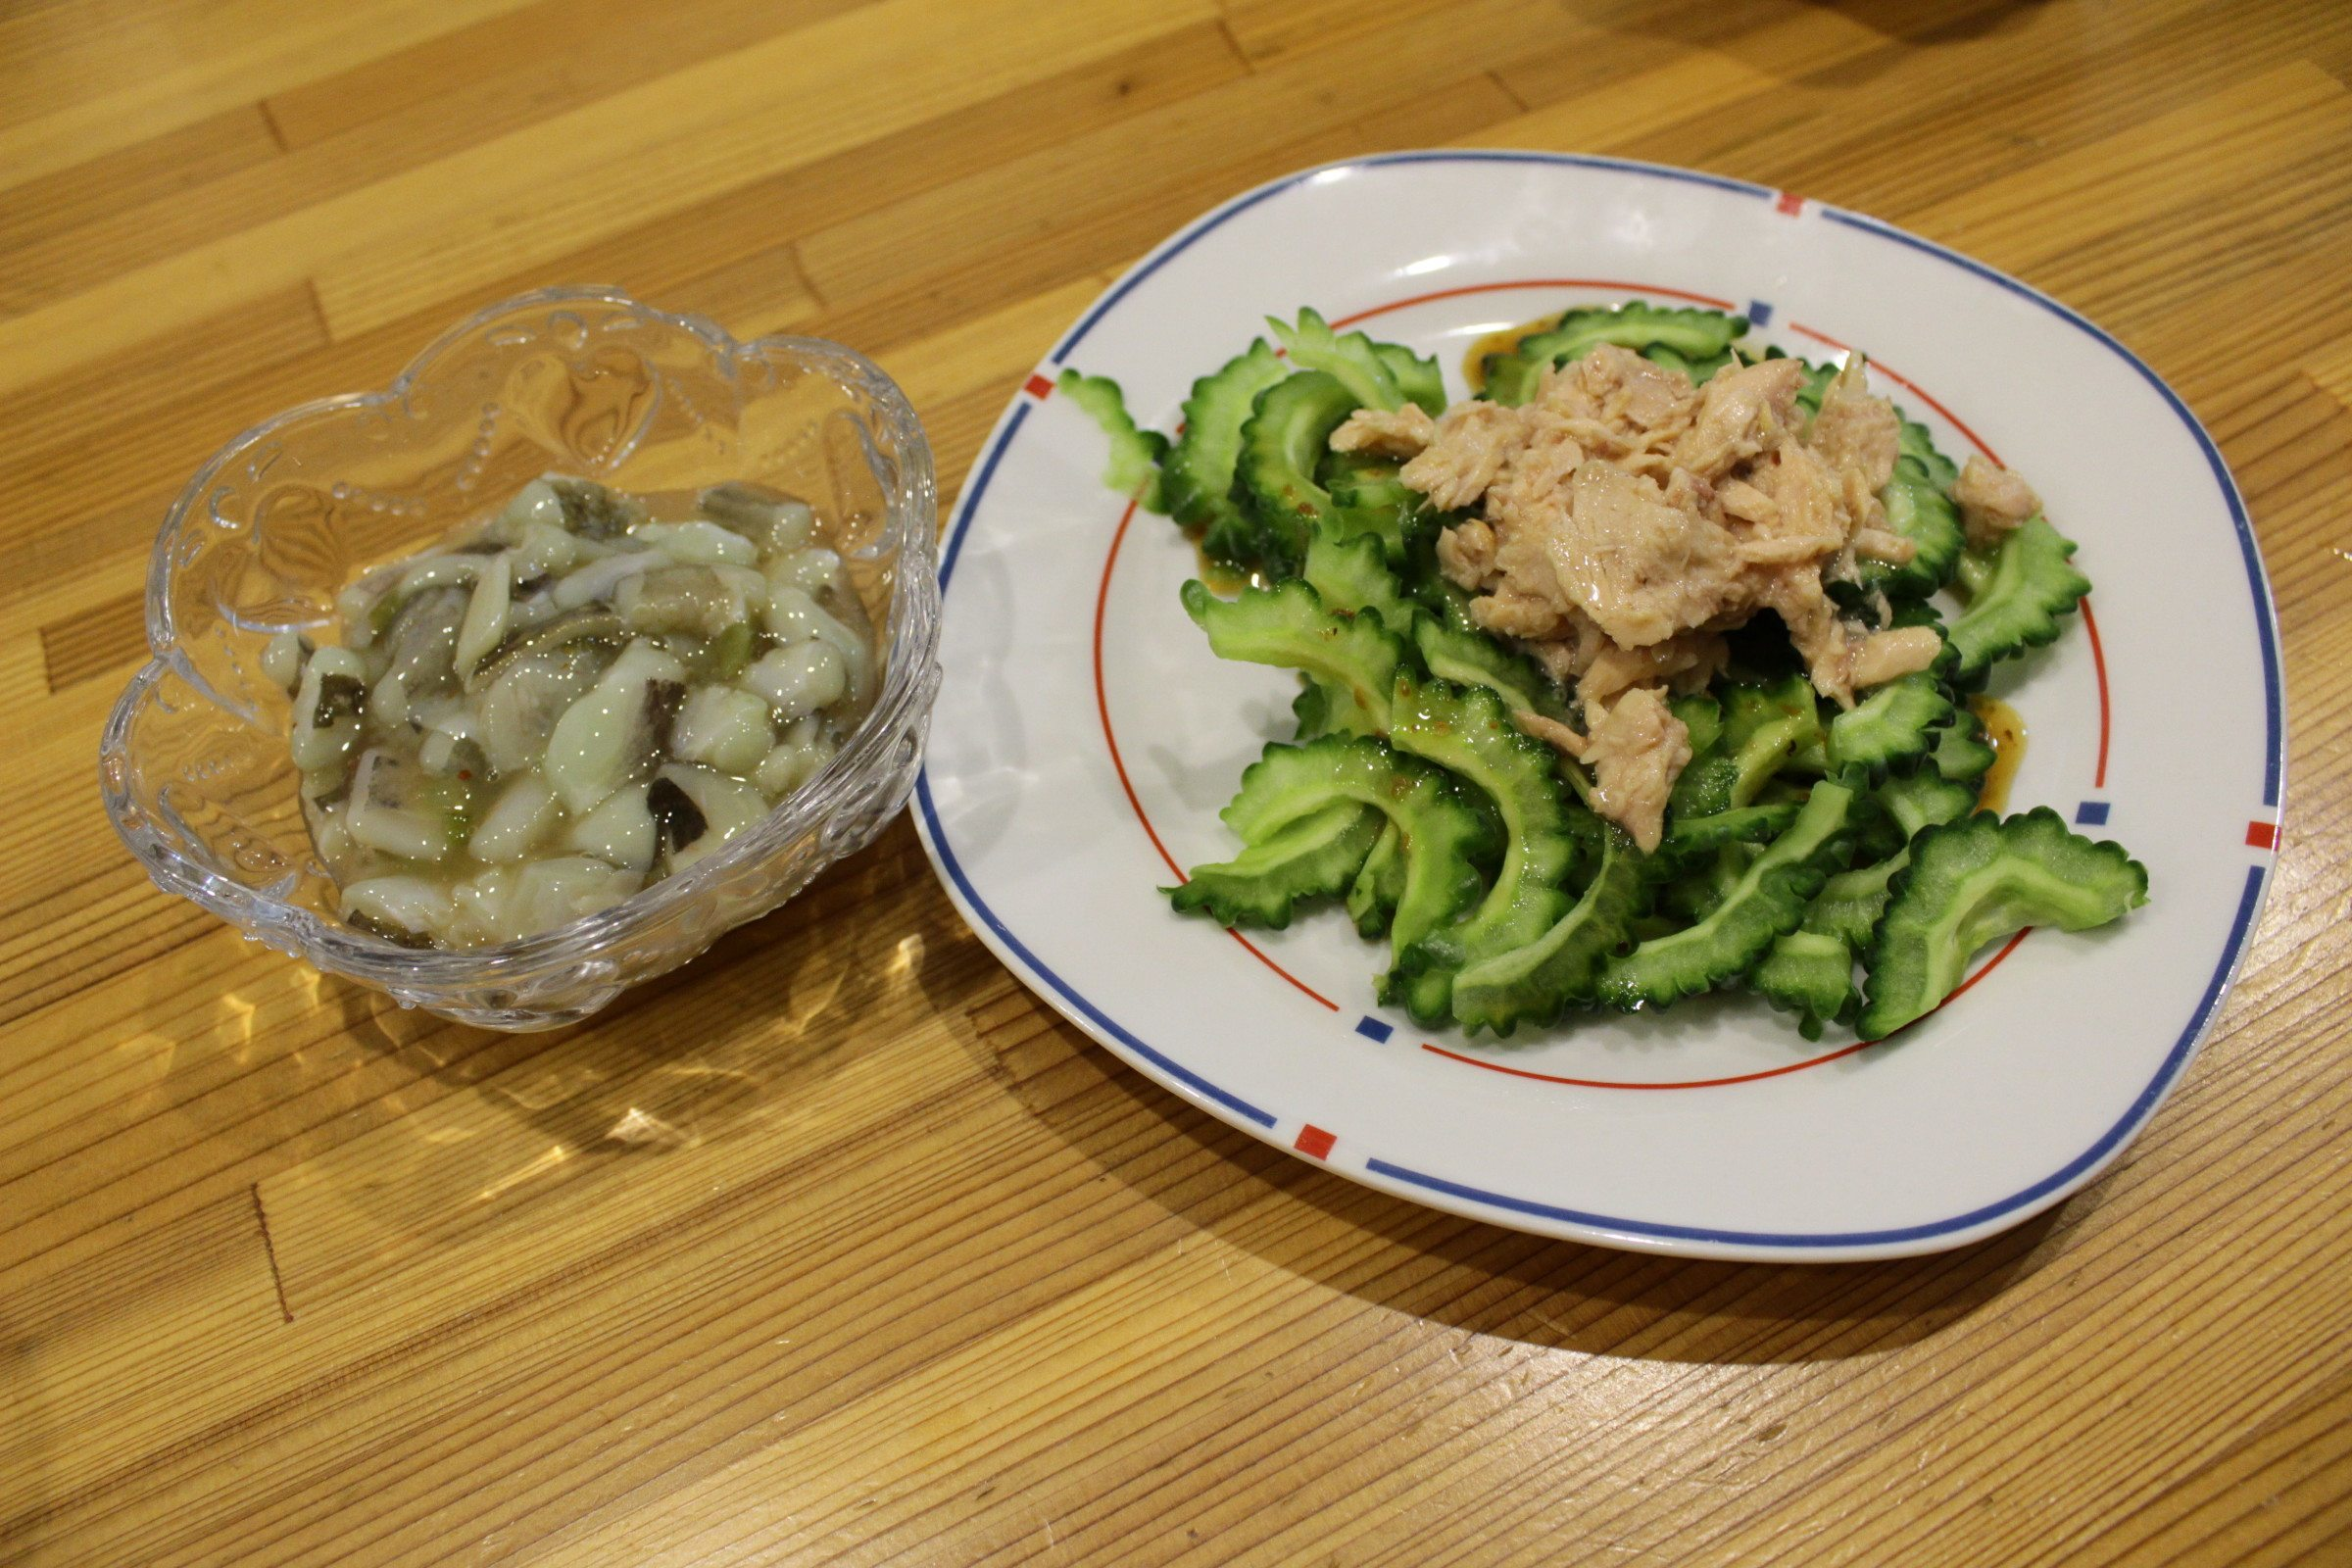 Goya salad with a side of wasabi octopus